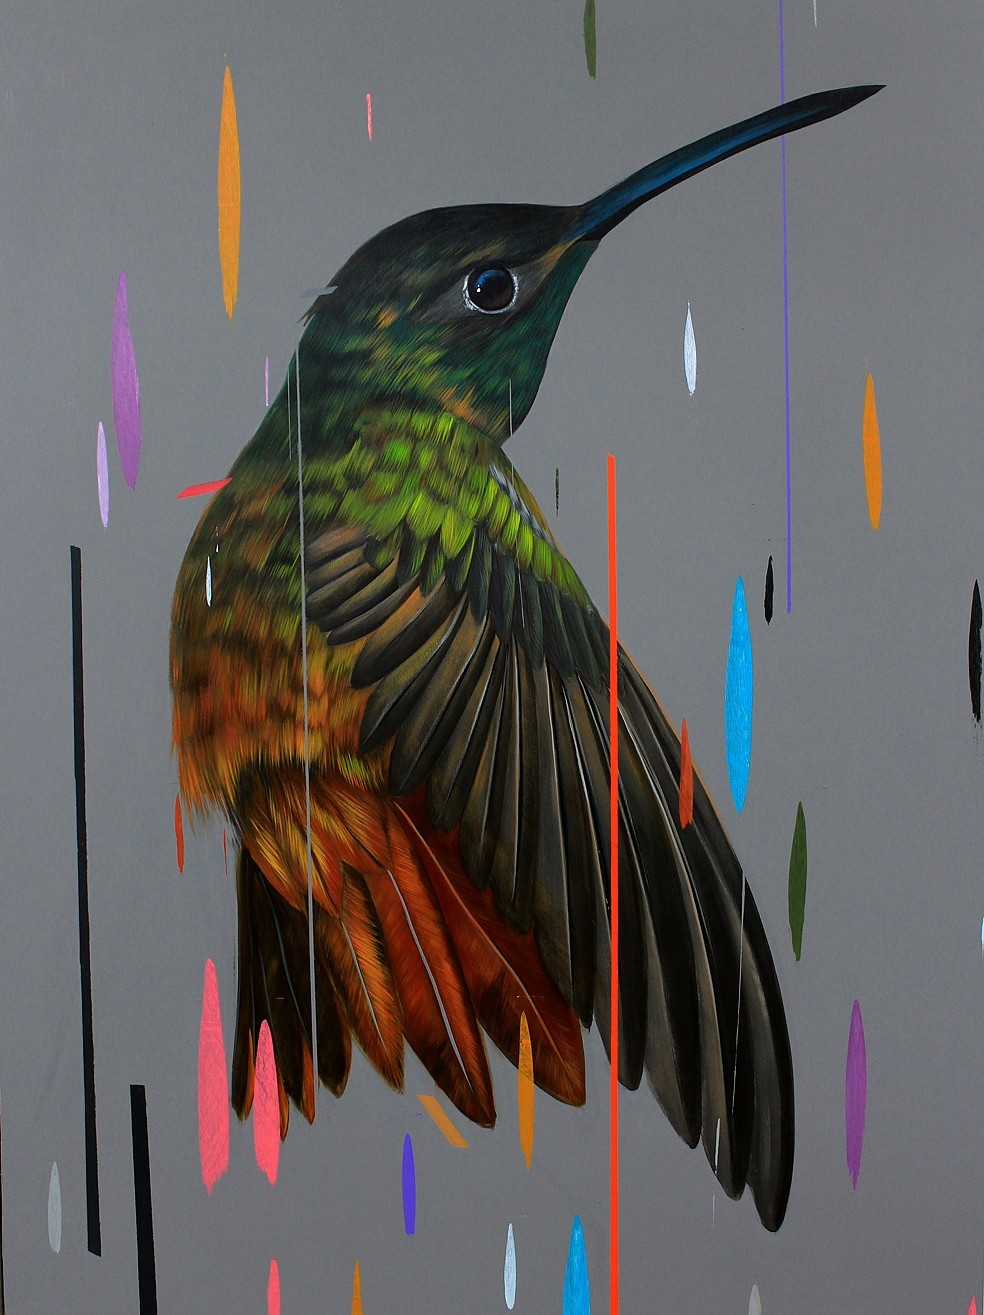 Paintings of Birds Sprinkled with Color by Frank Gonzales